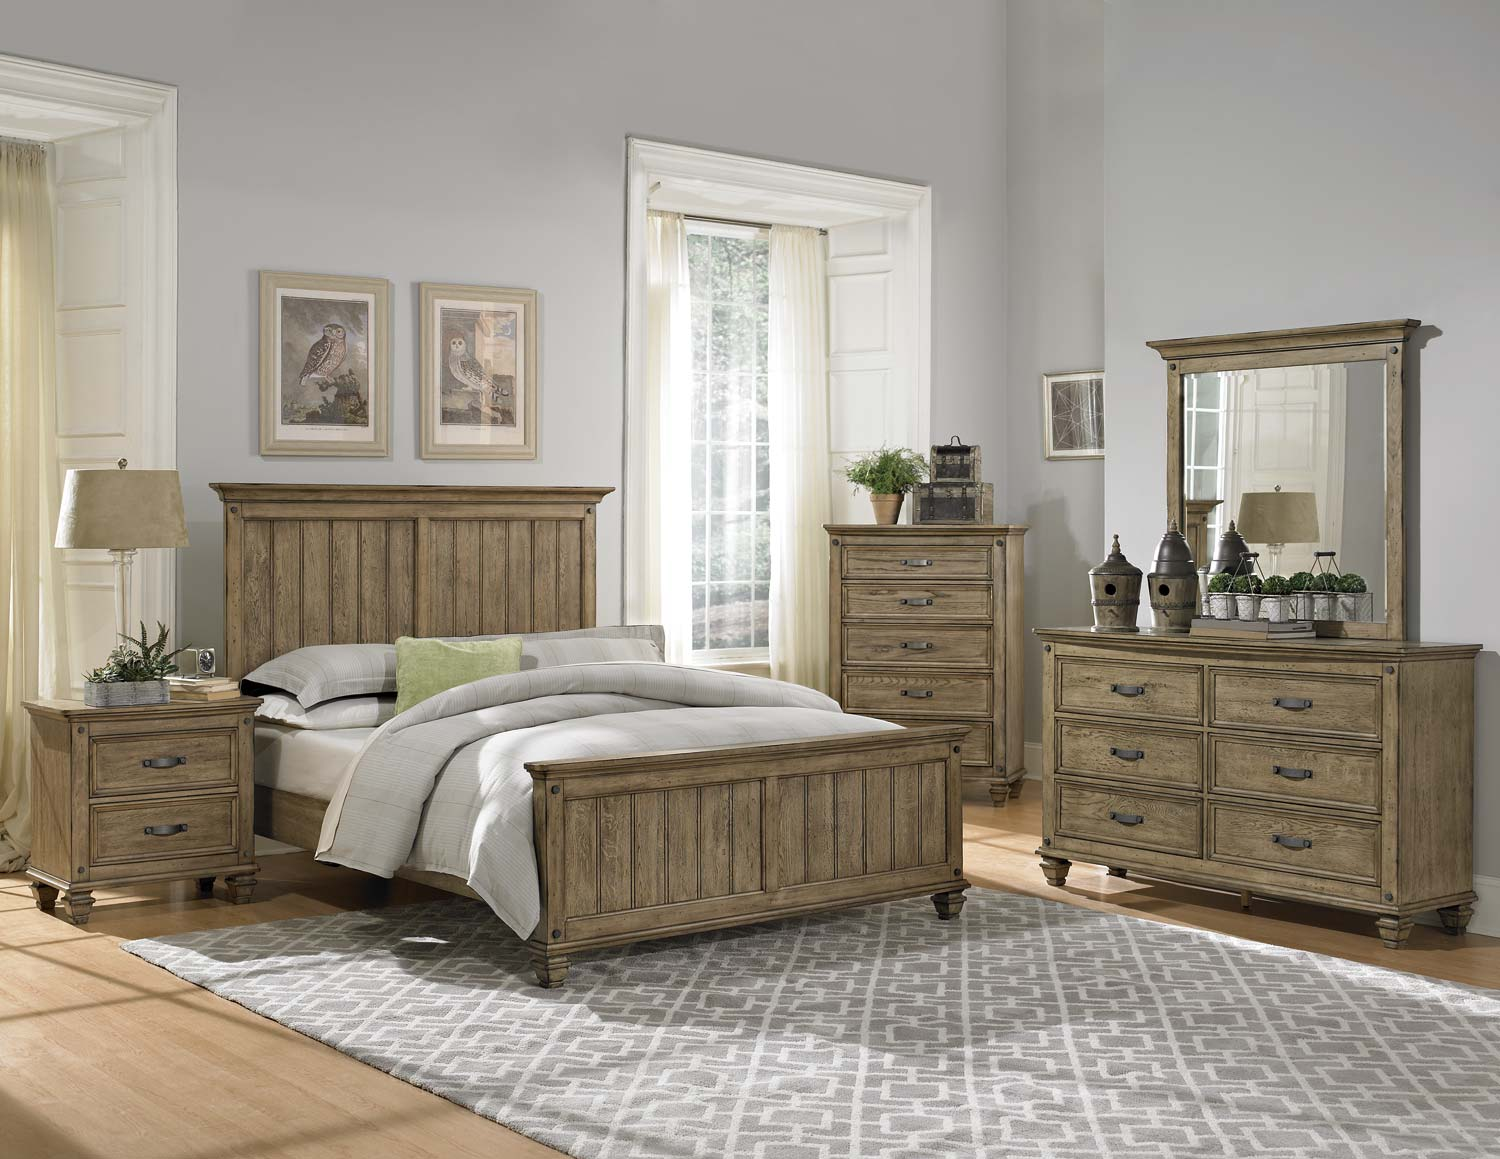 august bassett handsome driftwood crockin vaughan cherry from s furniture this new bedroom and